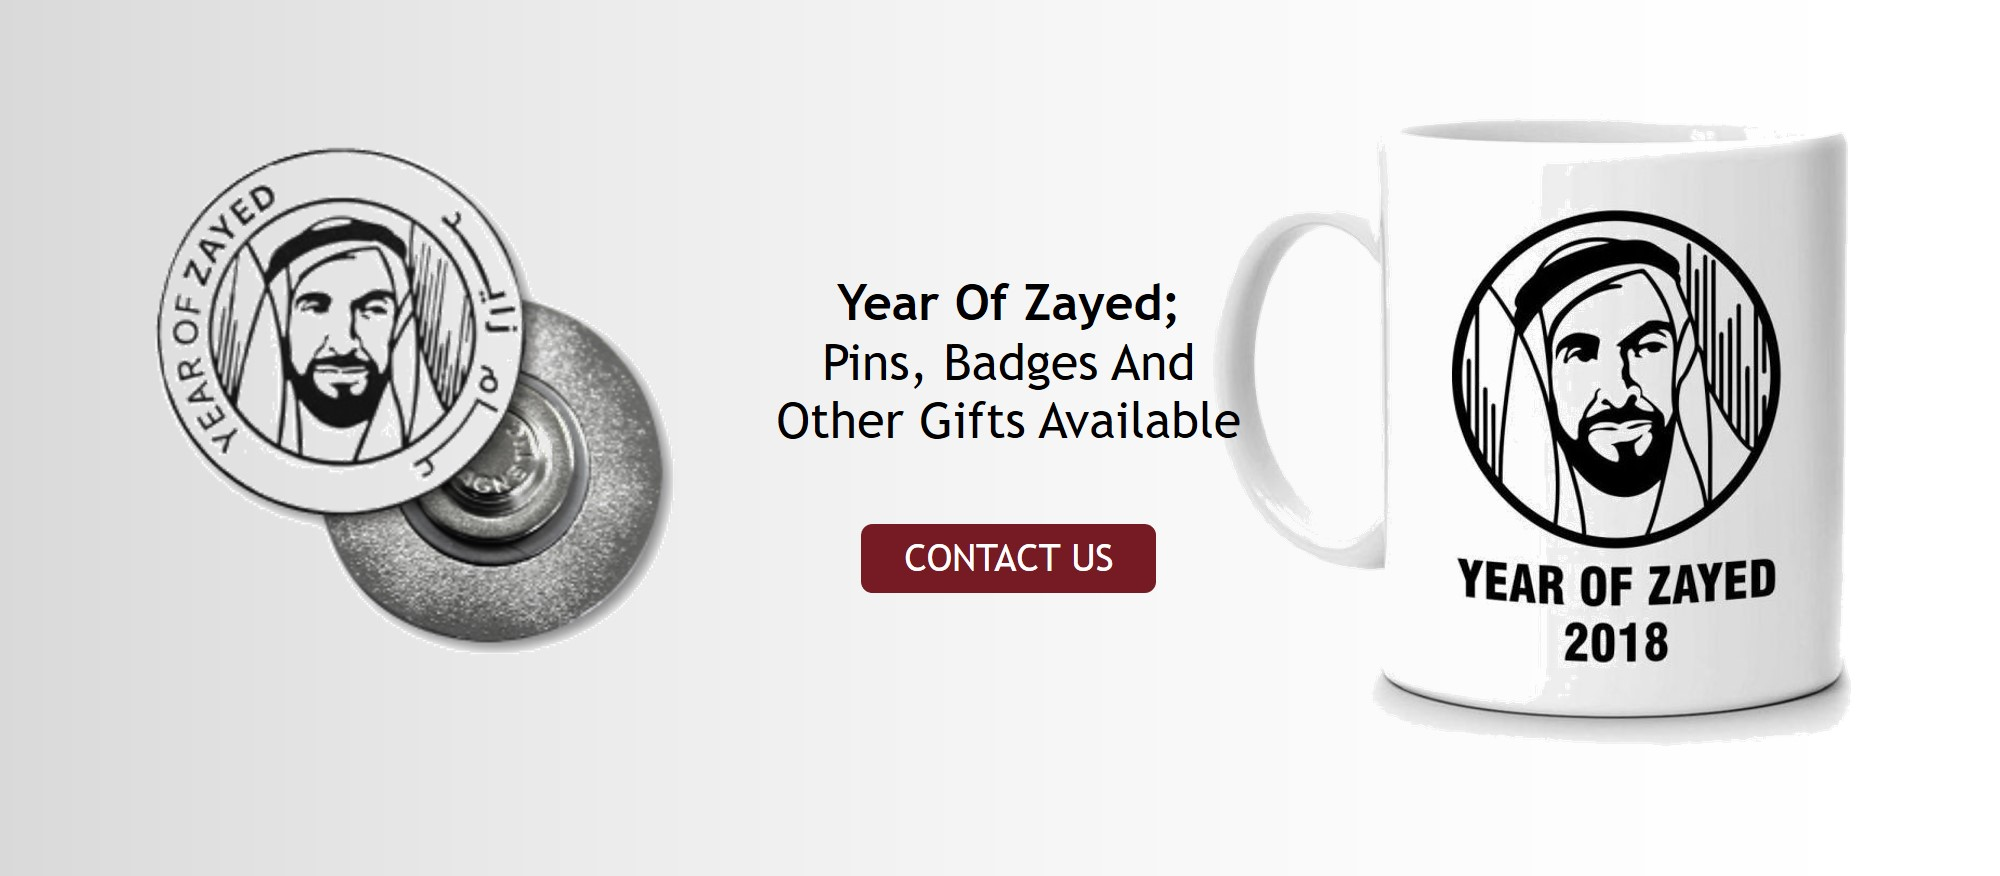 Year Of Zayed Pins, Badges And Other Gifts Available